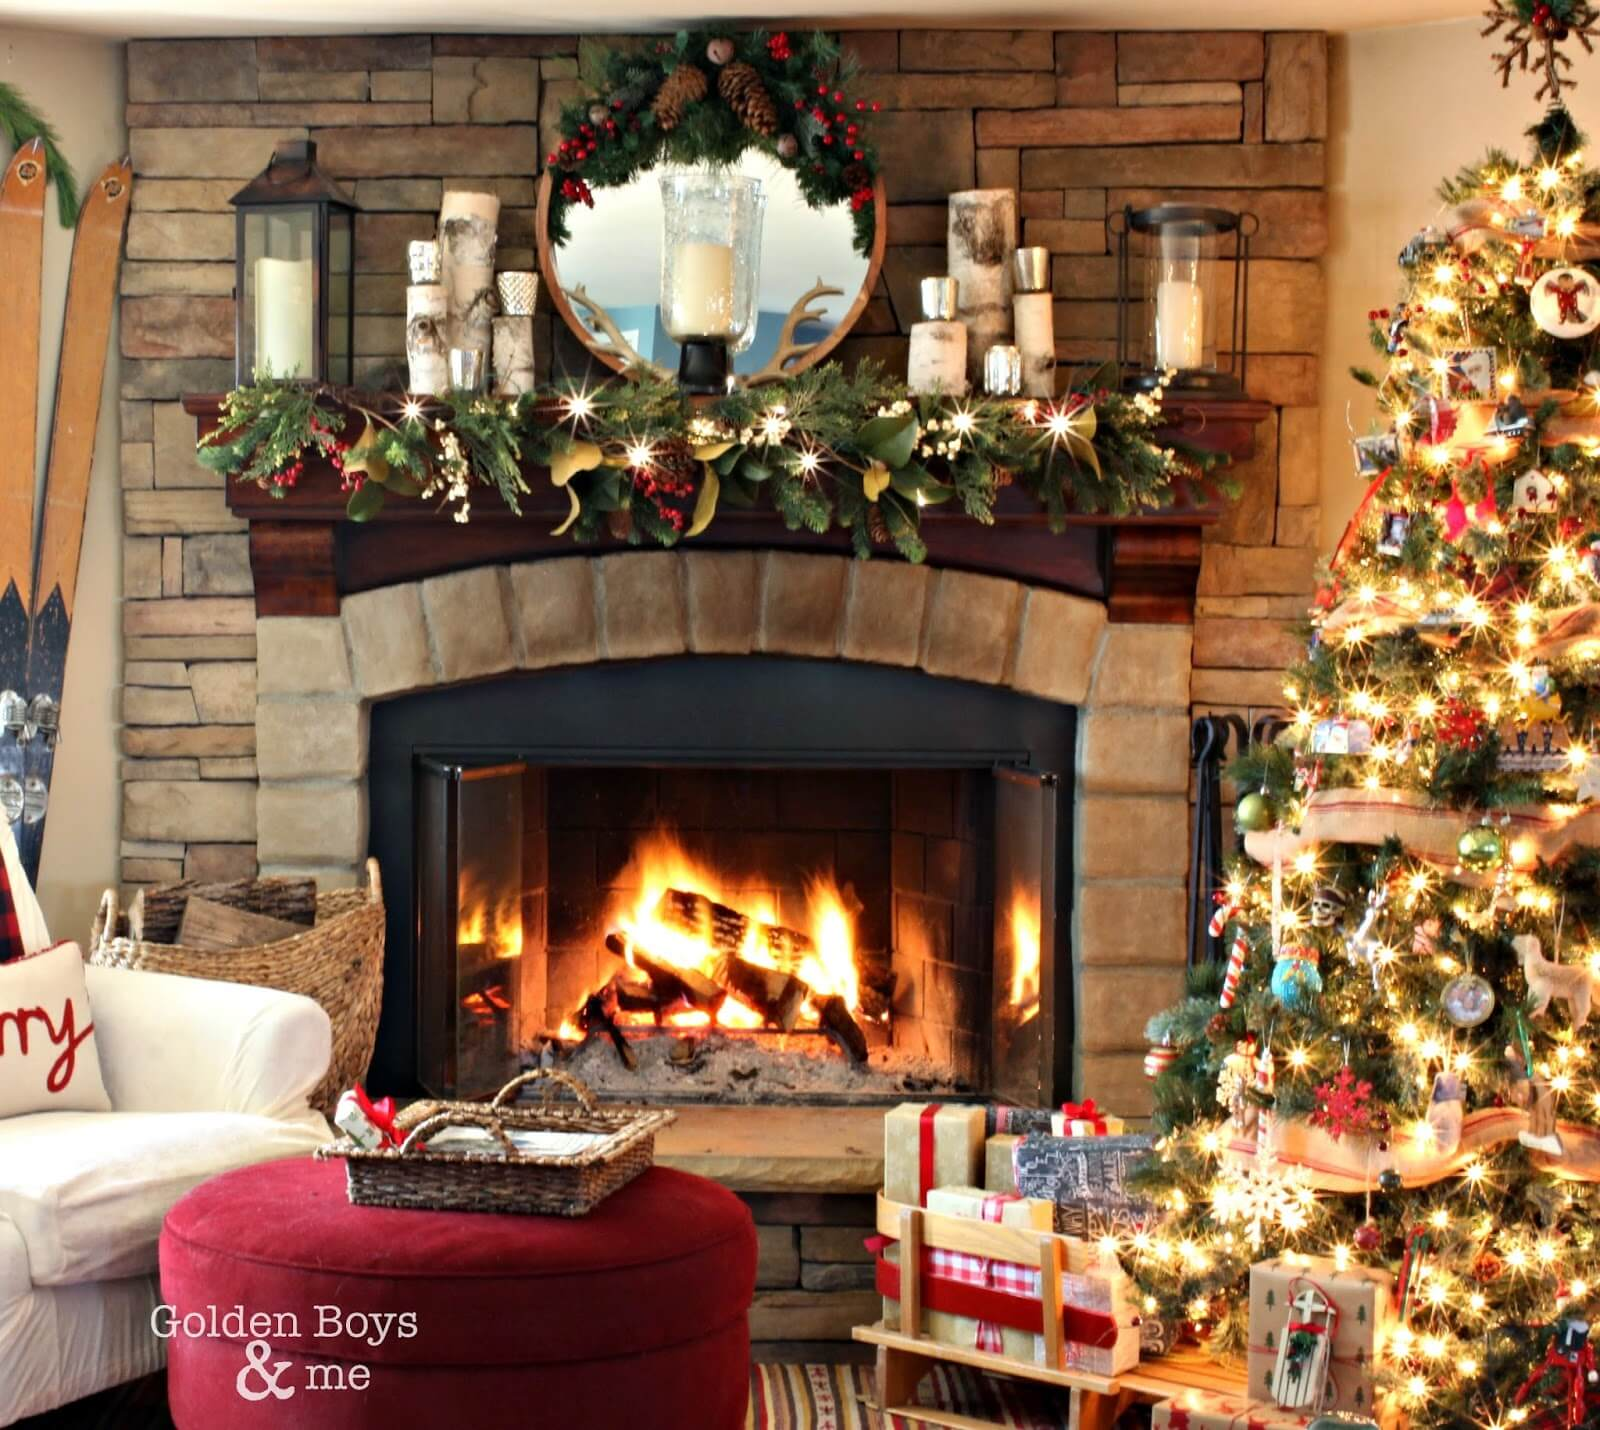 Decorate Your Christmas Mantel with Natural Birch Pillars & 32 Best Christmas Mantel Decoration Ideas and Designs for 2018